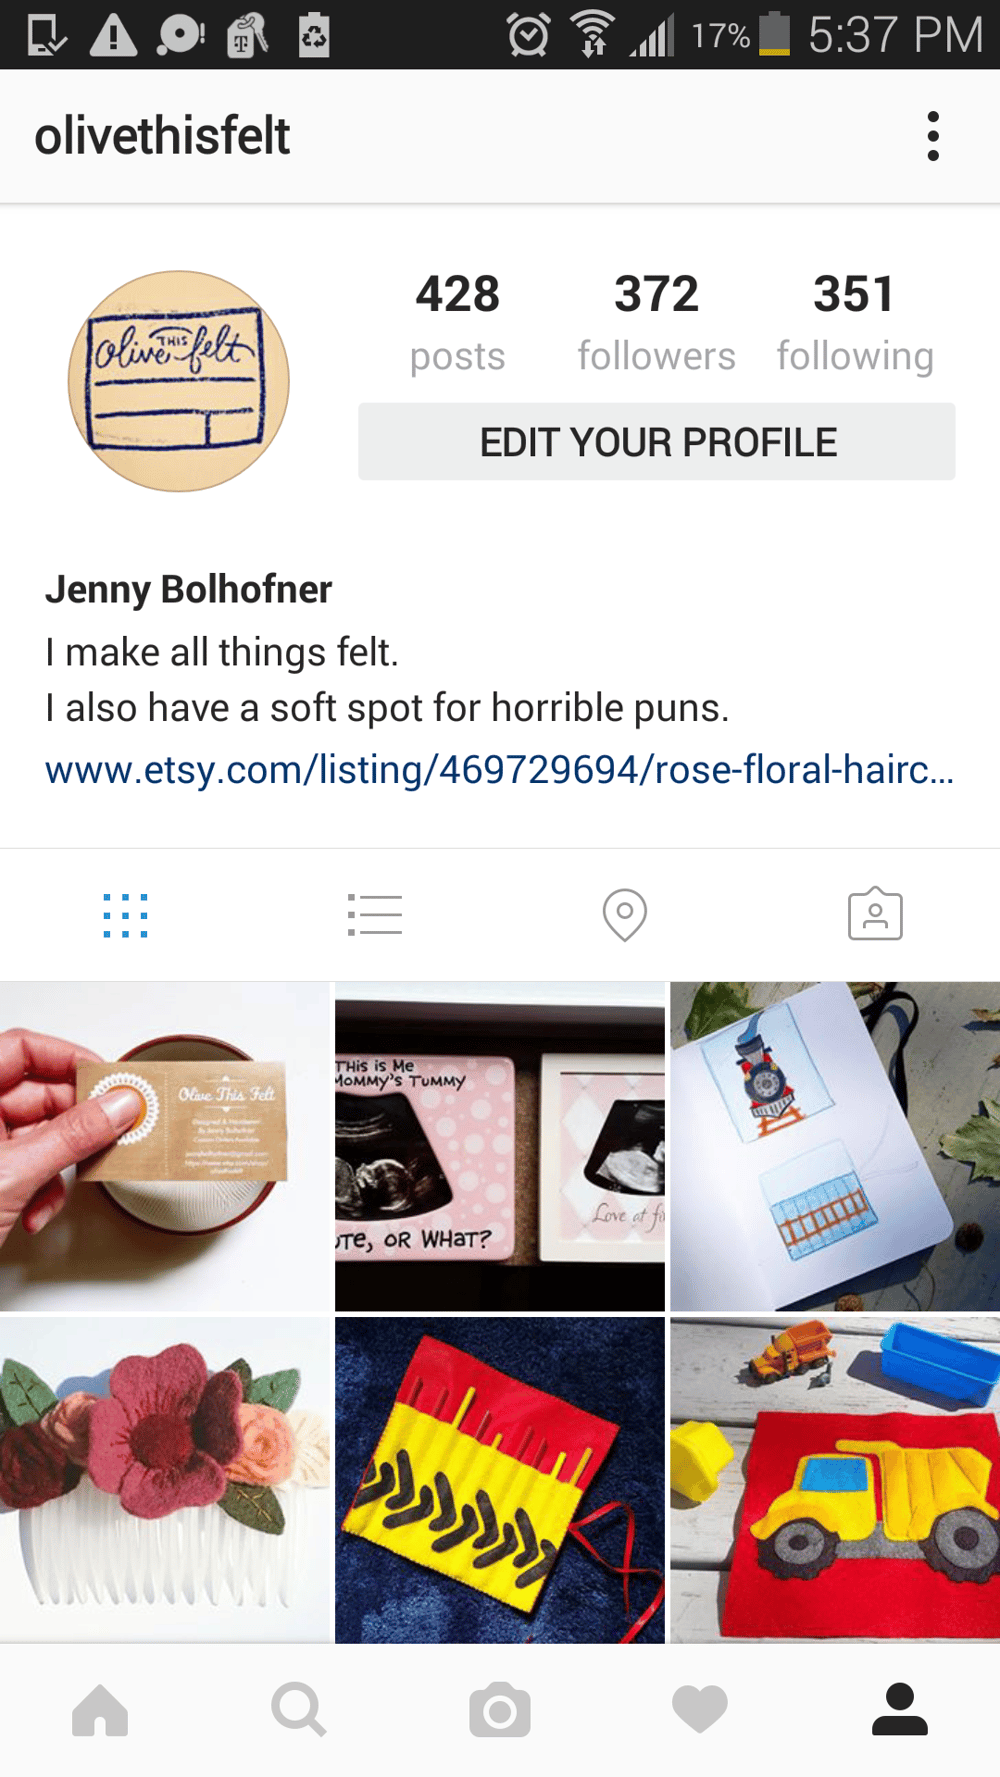 Instagram Makeover - image 1 - student project